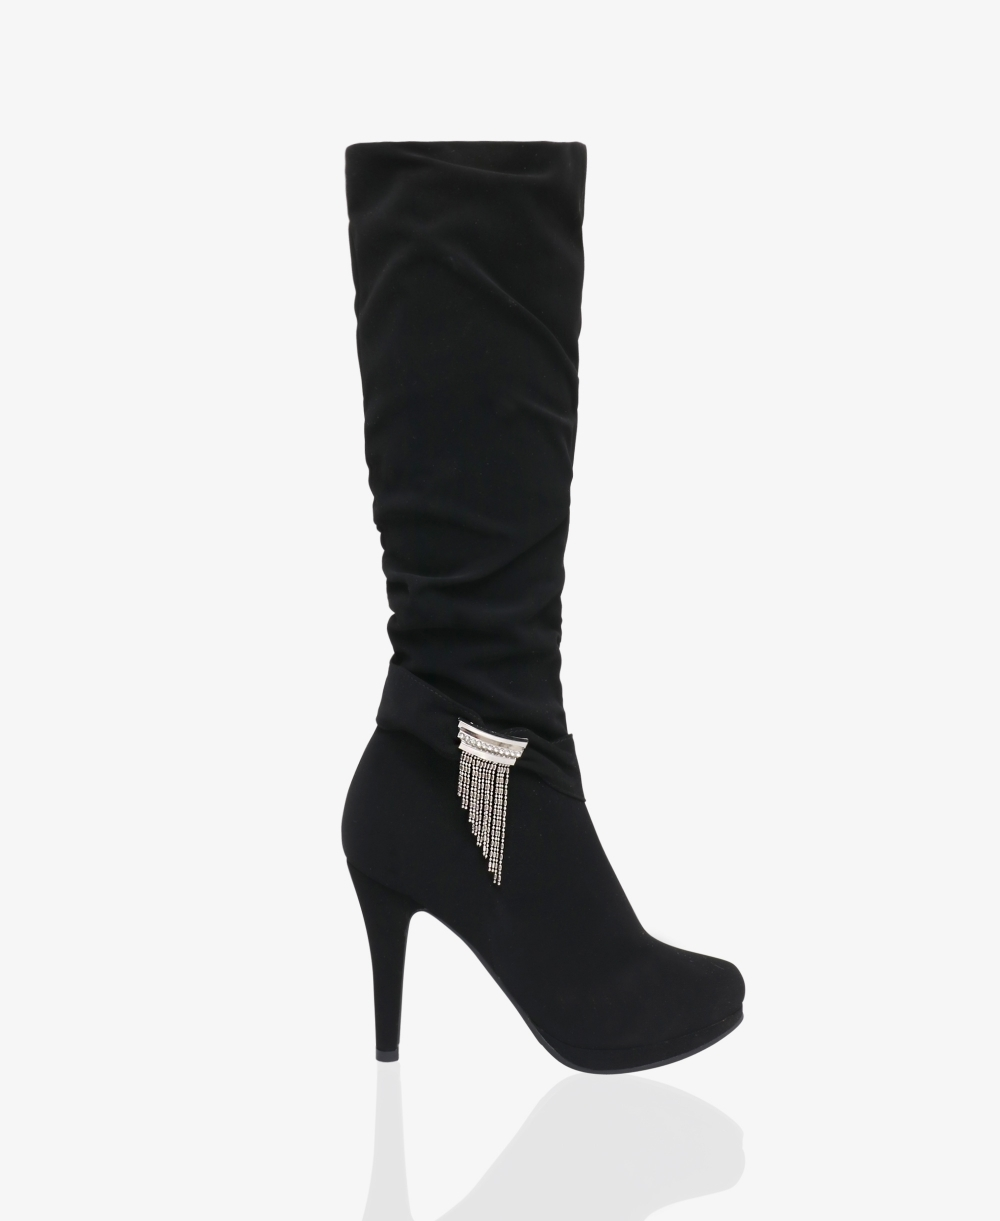 6a4f2da2e10 Slouchy Knee High Boots with Tassel